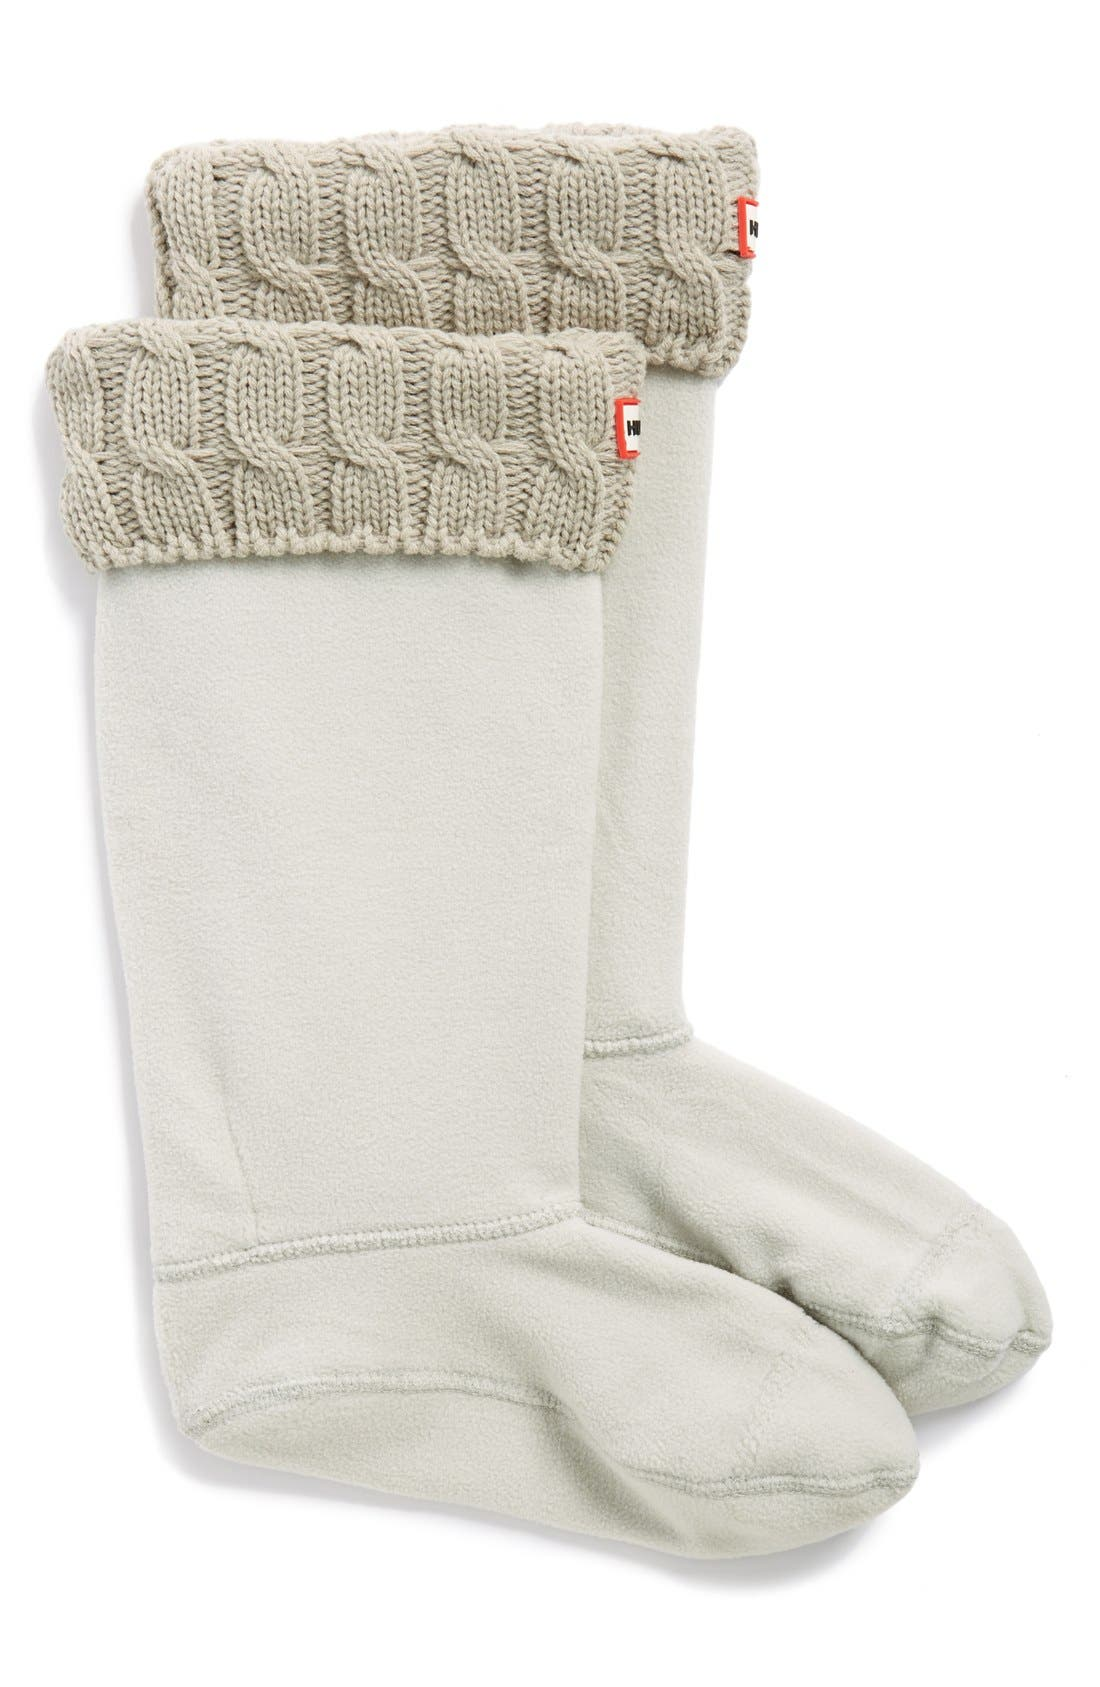 Original Tall Cable Knit Cuff Welly Boot Socks,                         Main,                         color, Greige